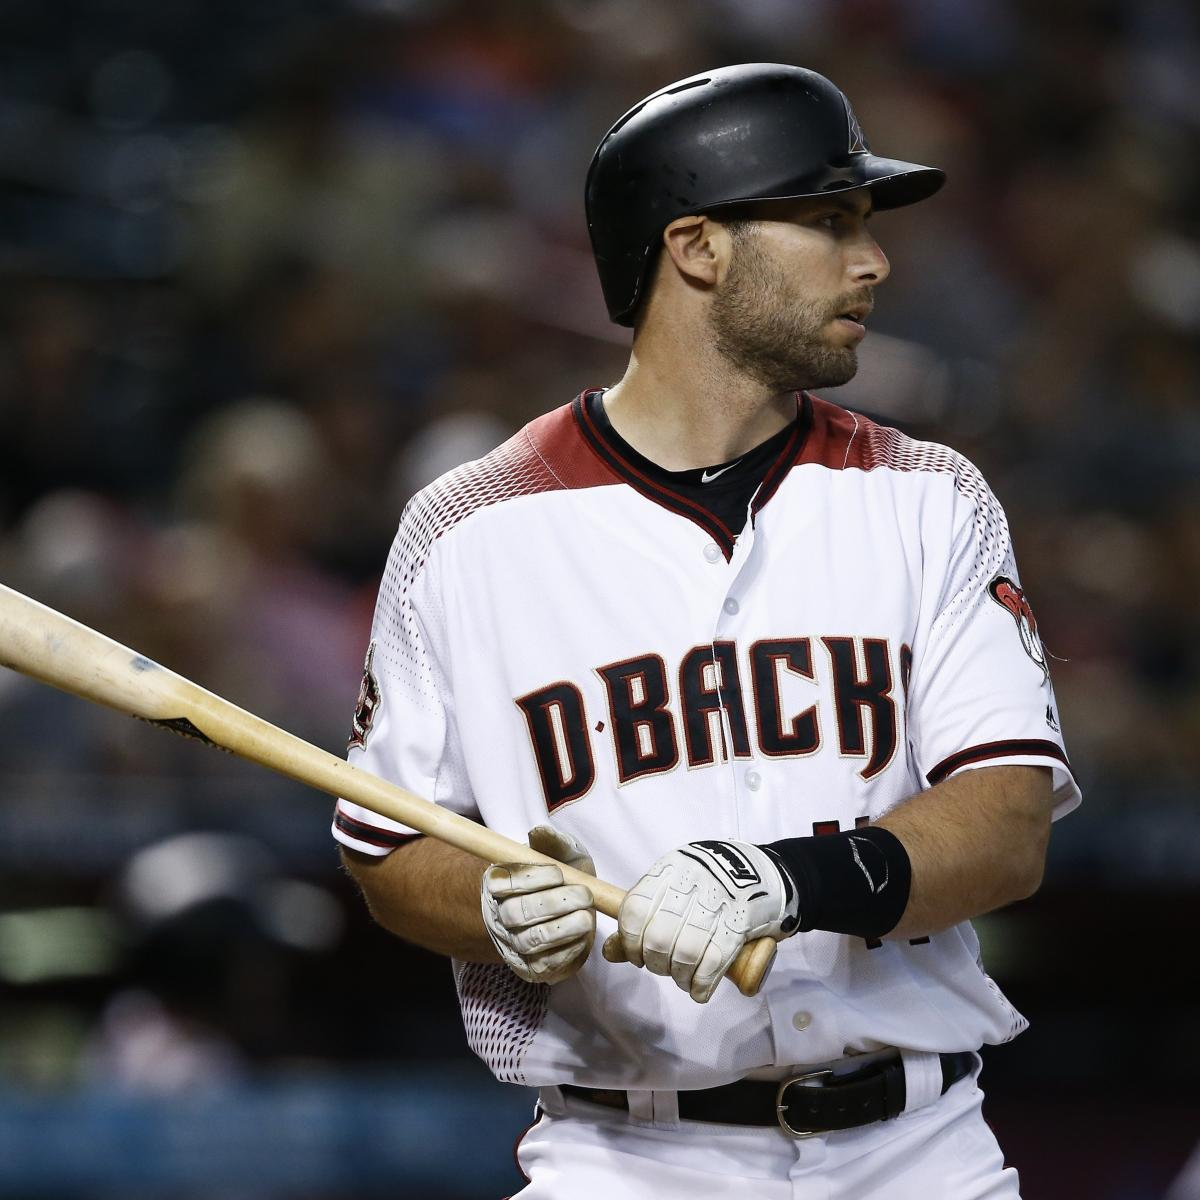 Arizona Diamondbacks vs. New York Mets: Odds, Analysis, MLB Betting Pick